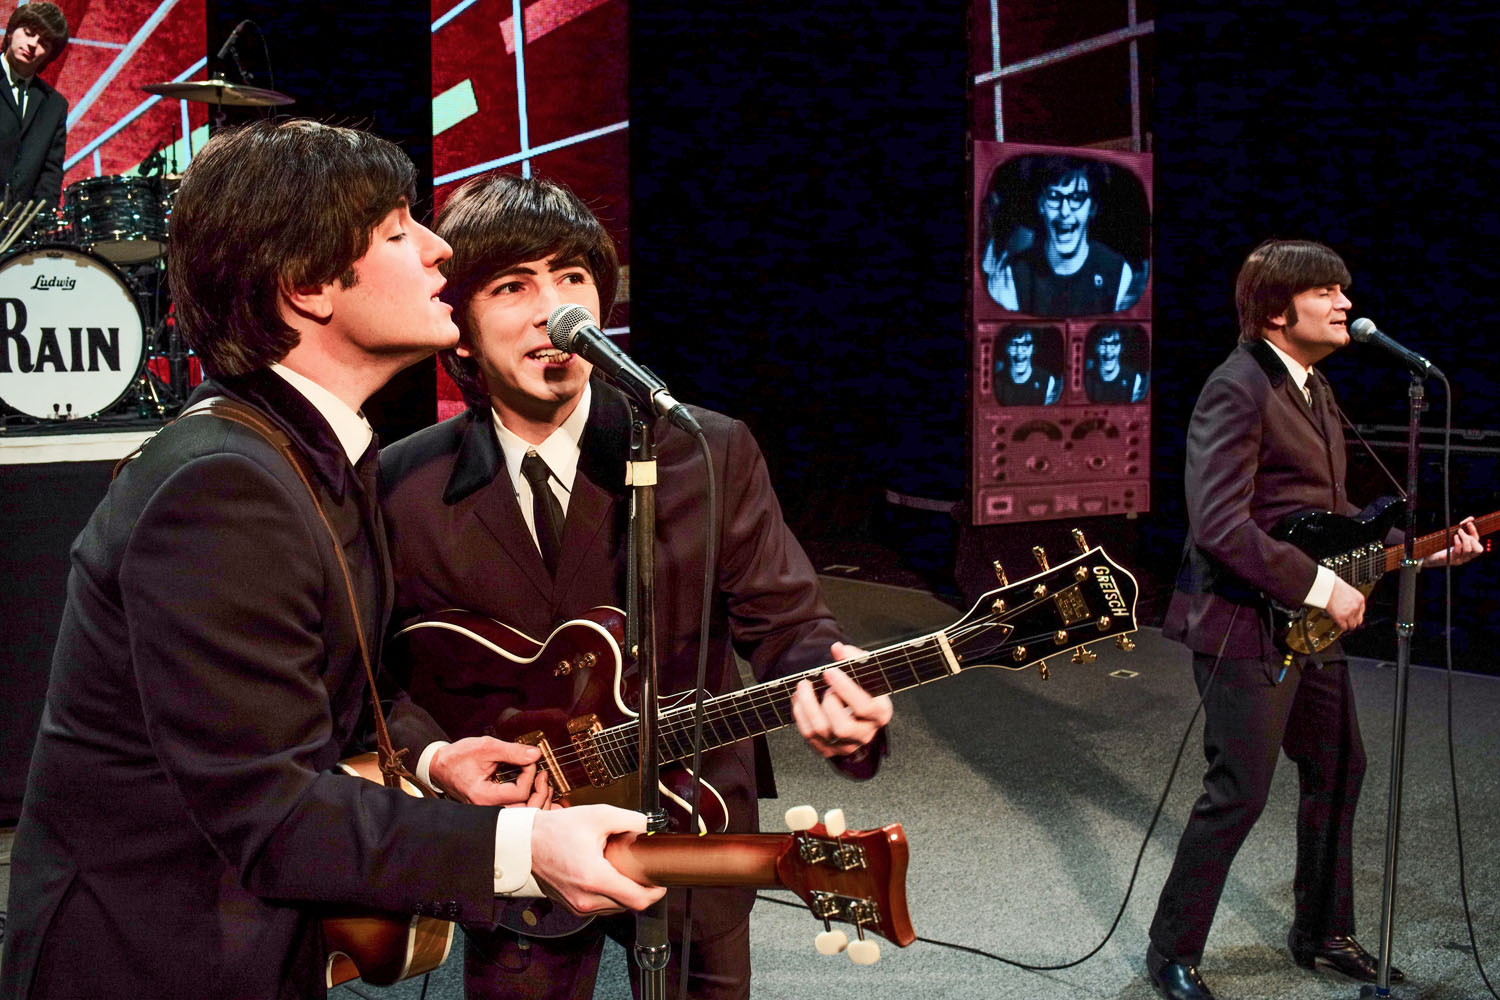 "Pantages ""Rain: A Beatles tribute"" review by Otis Stokes"